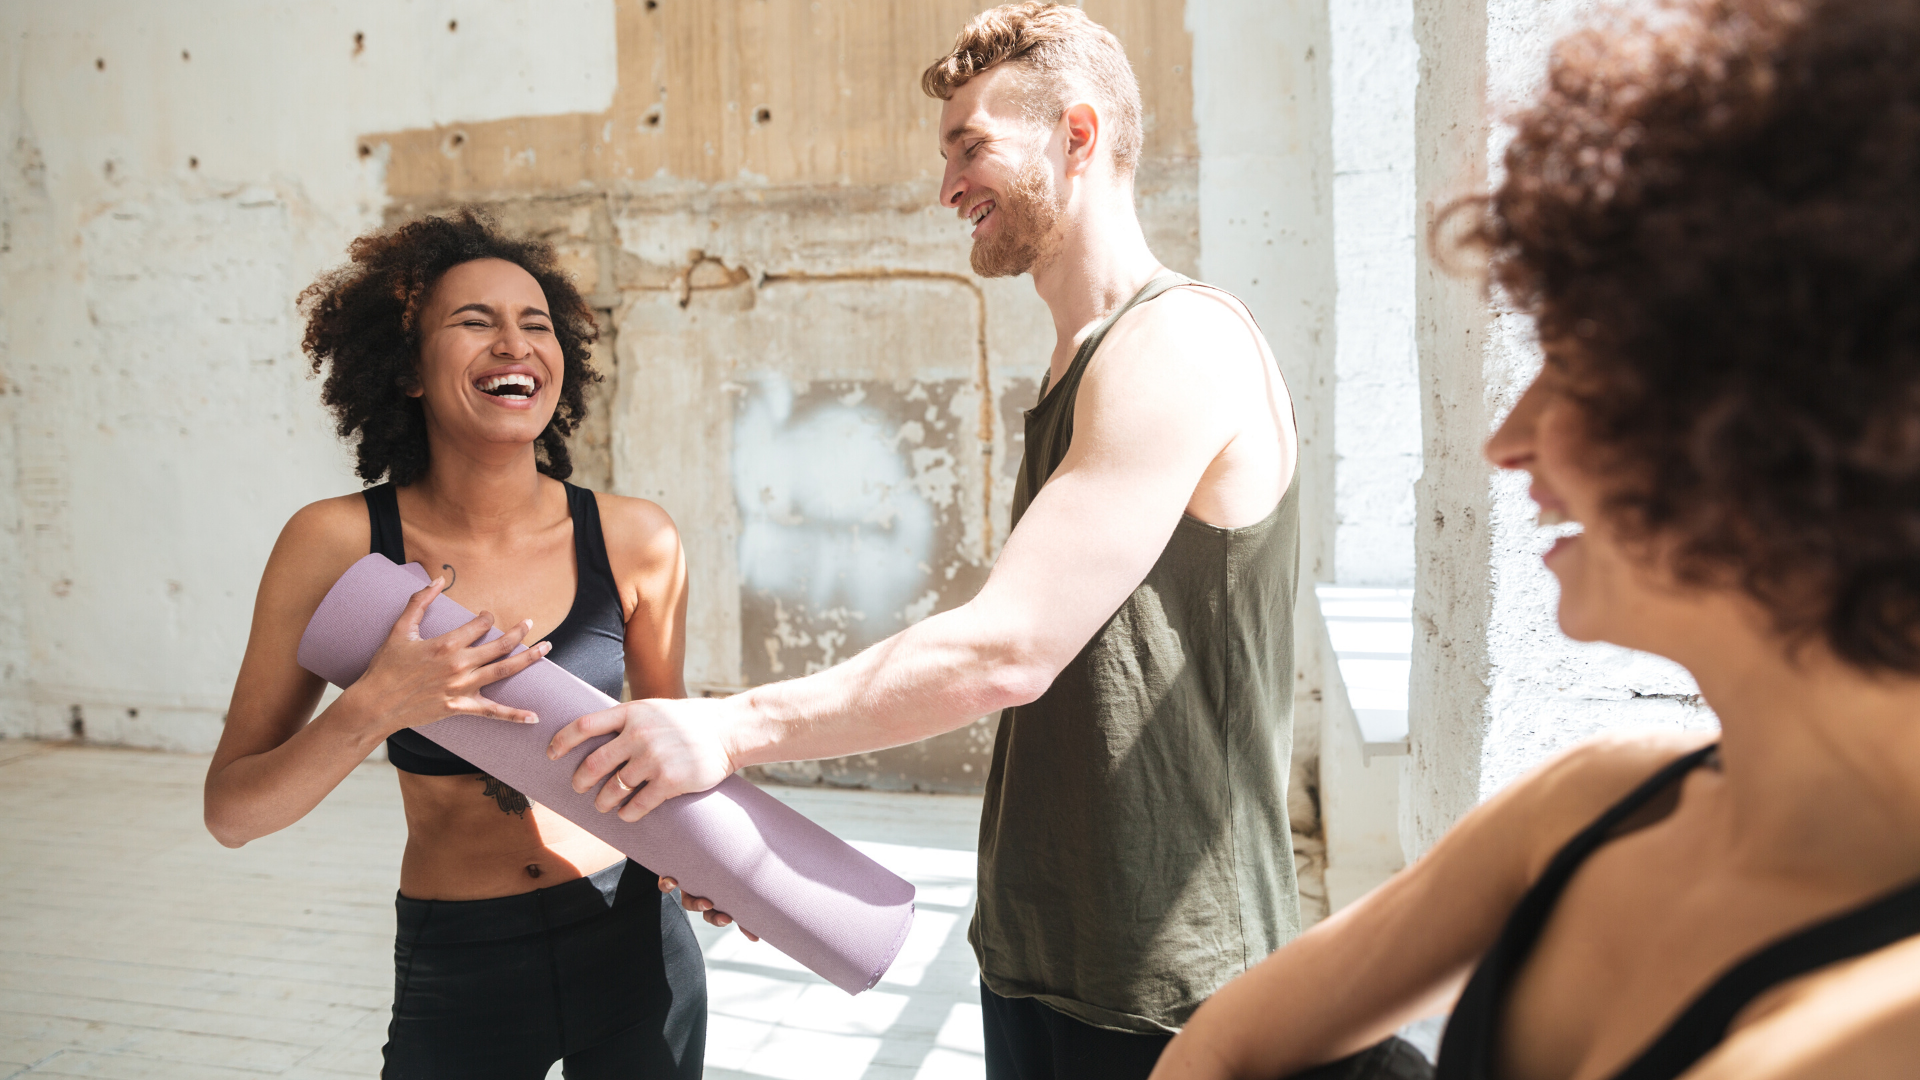 Man and woman laughing together after yoga class.